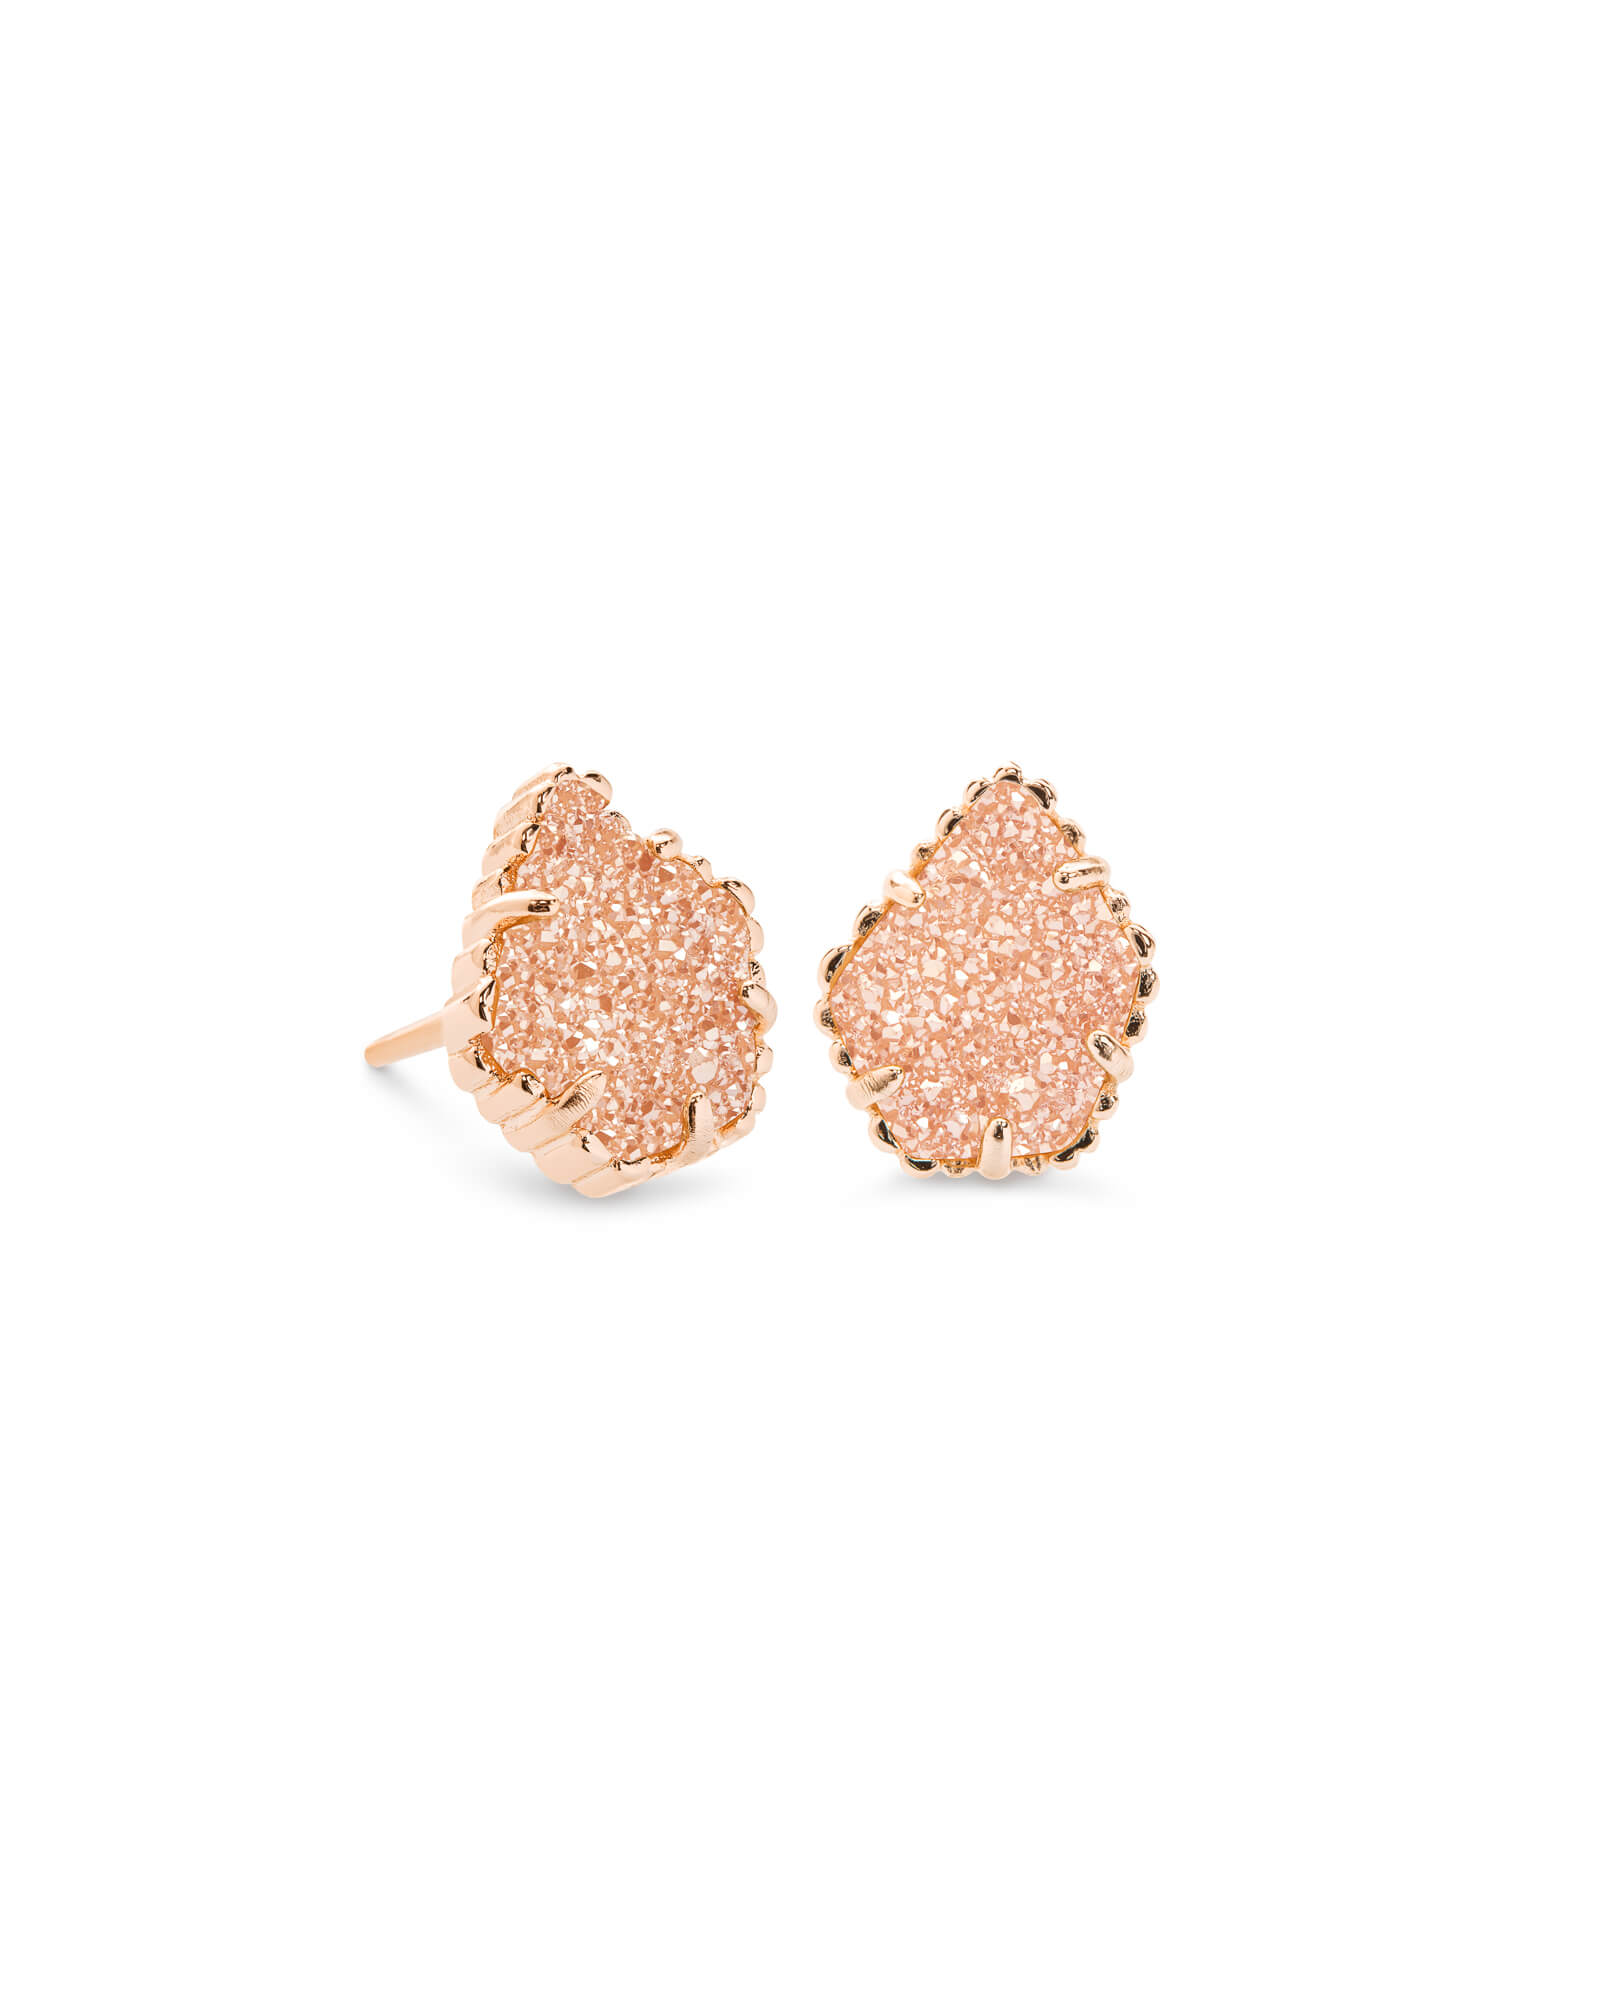 048e82c0e Kendra Scott Tessa Earrings Rose Gold - Best All Earring Photos ...